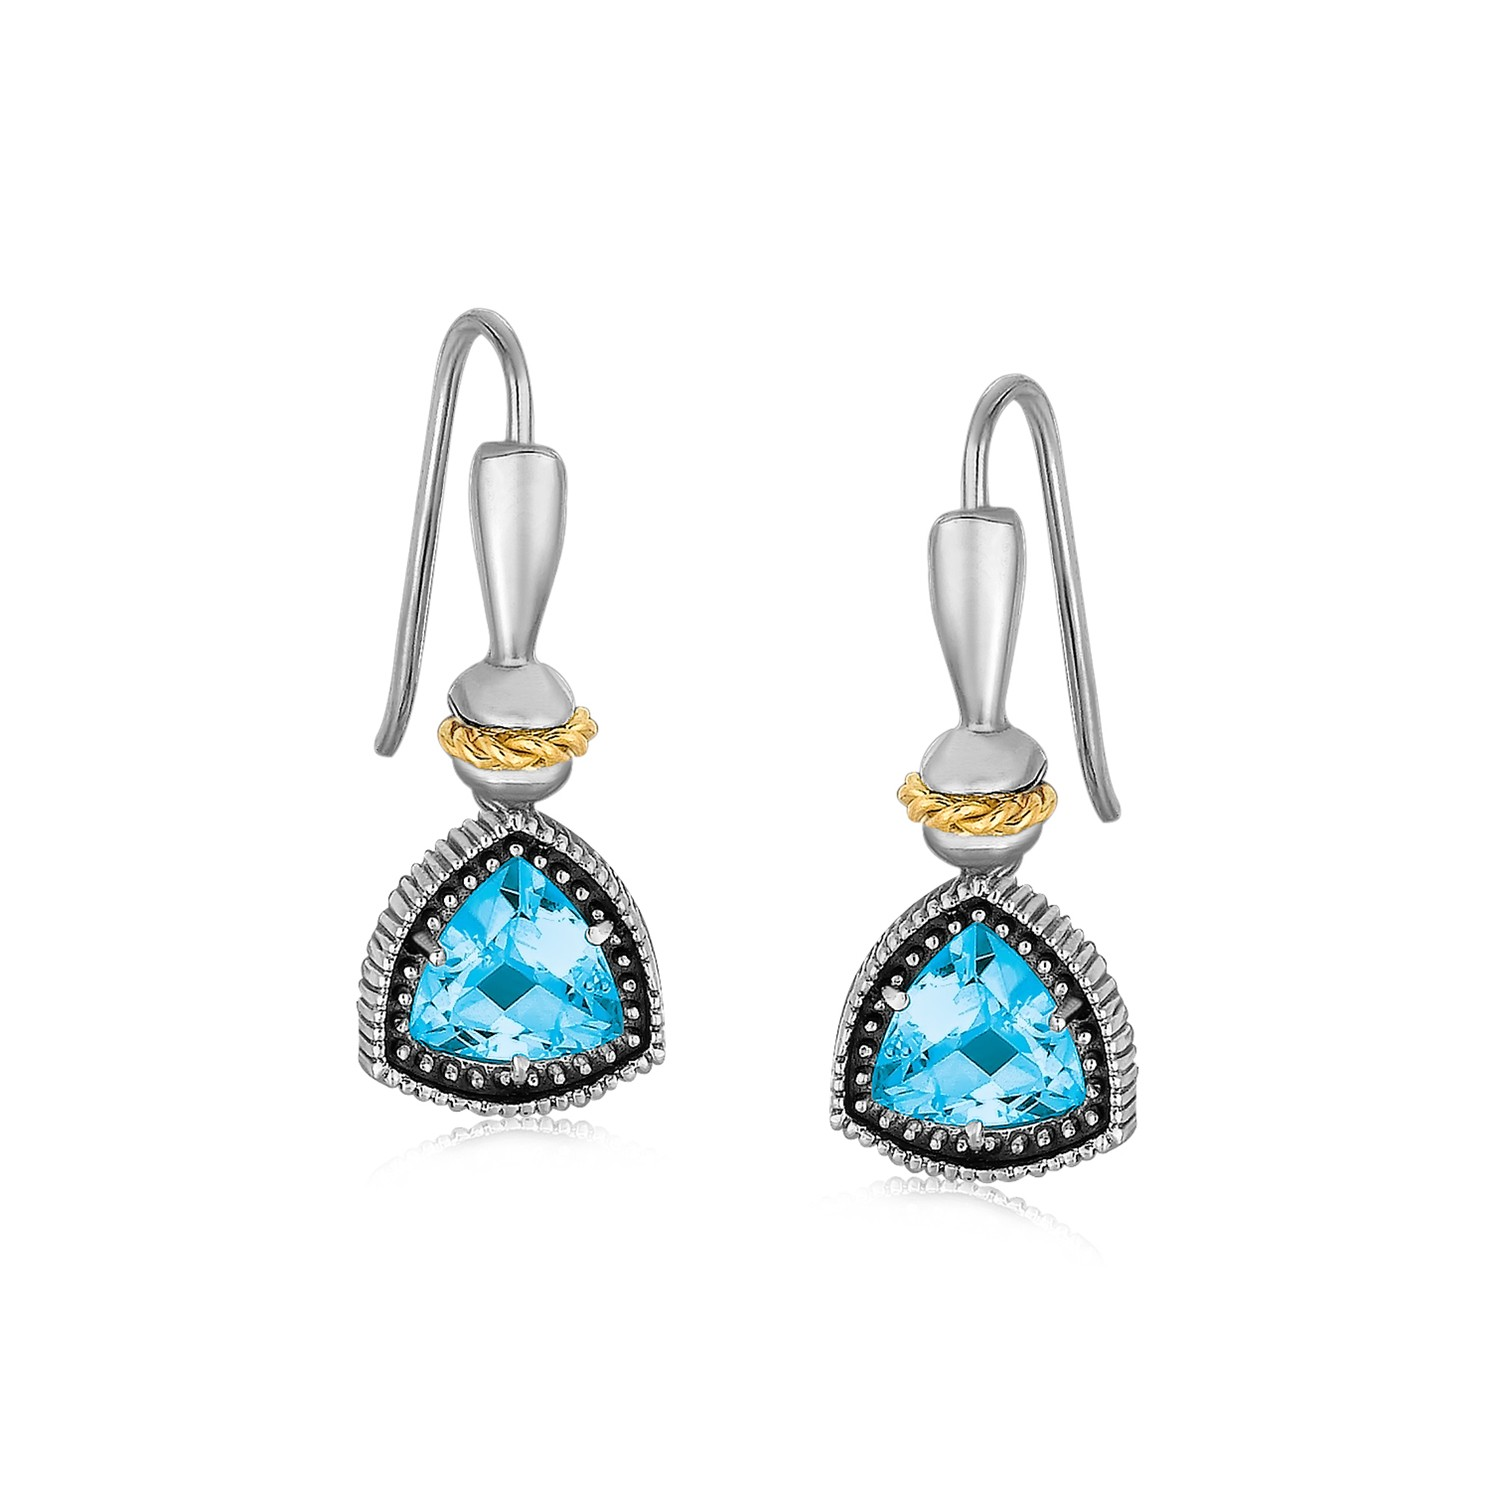 Blue Topaz Trilliant Cut Earrings In 18k Yellow Gold And